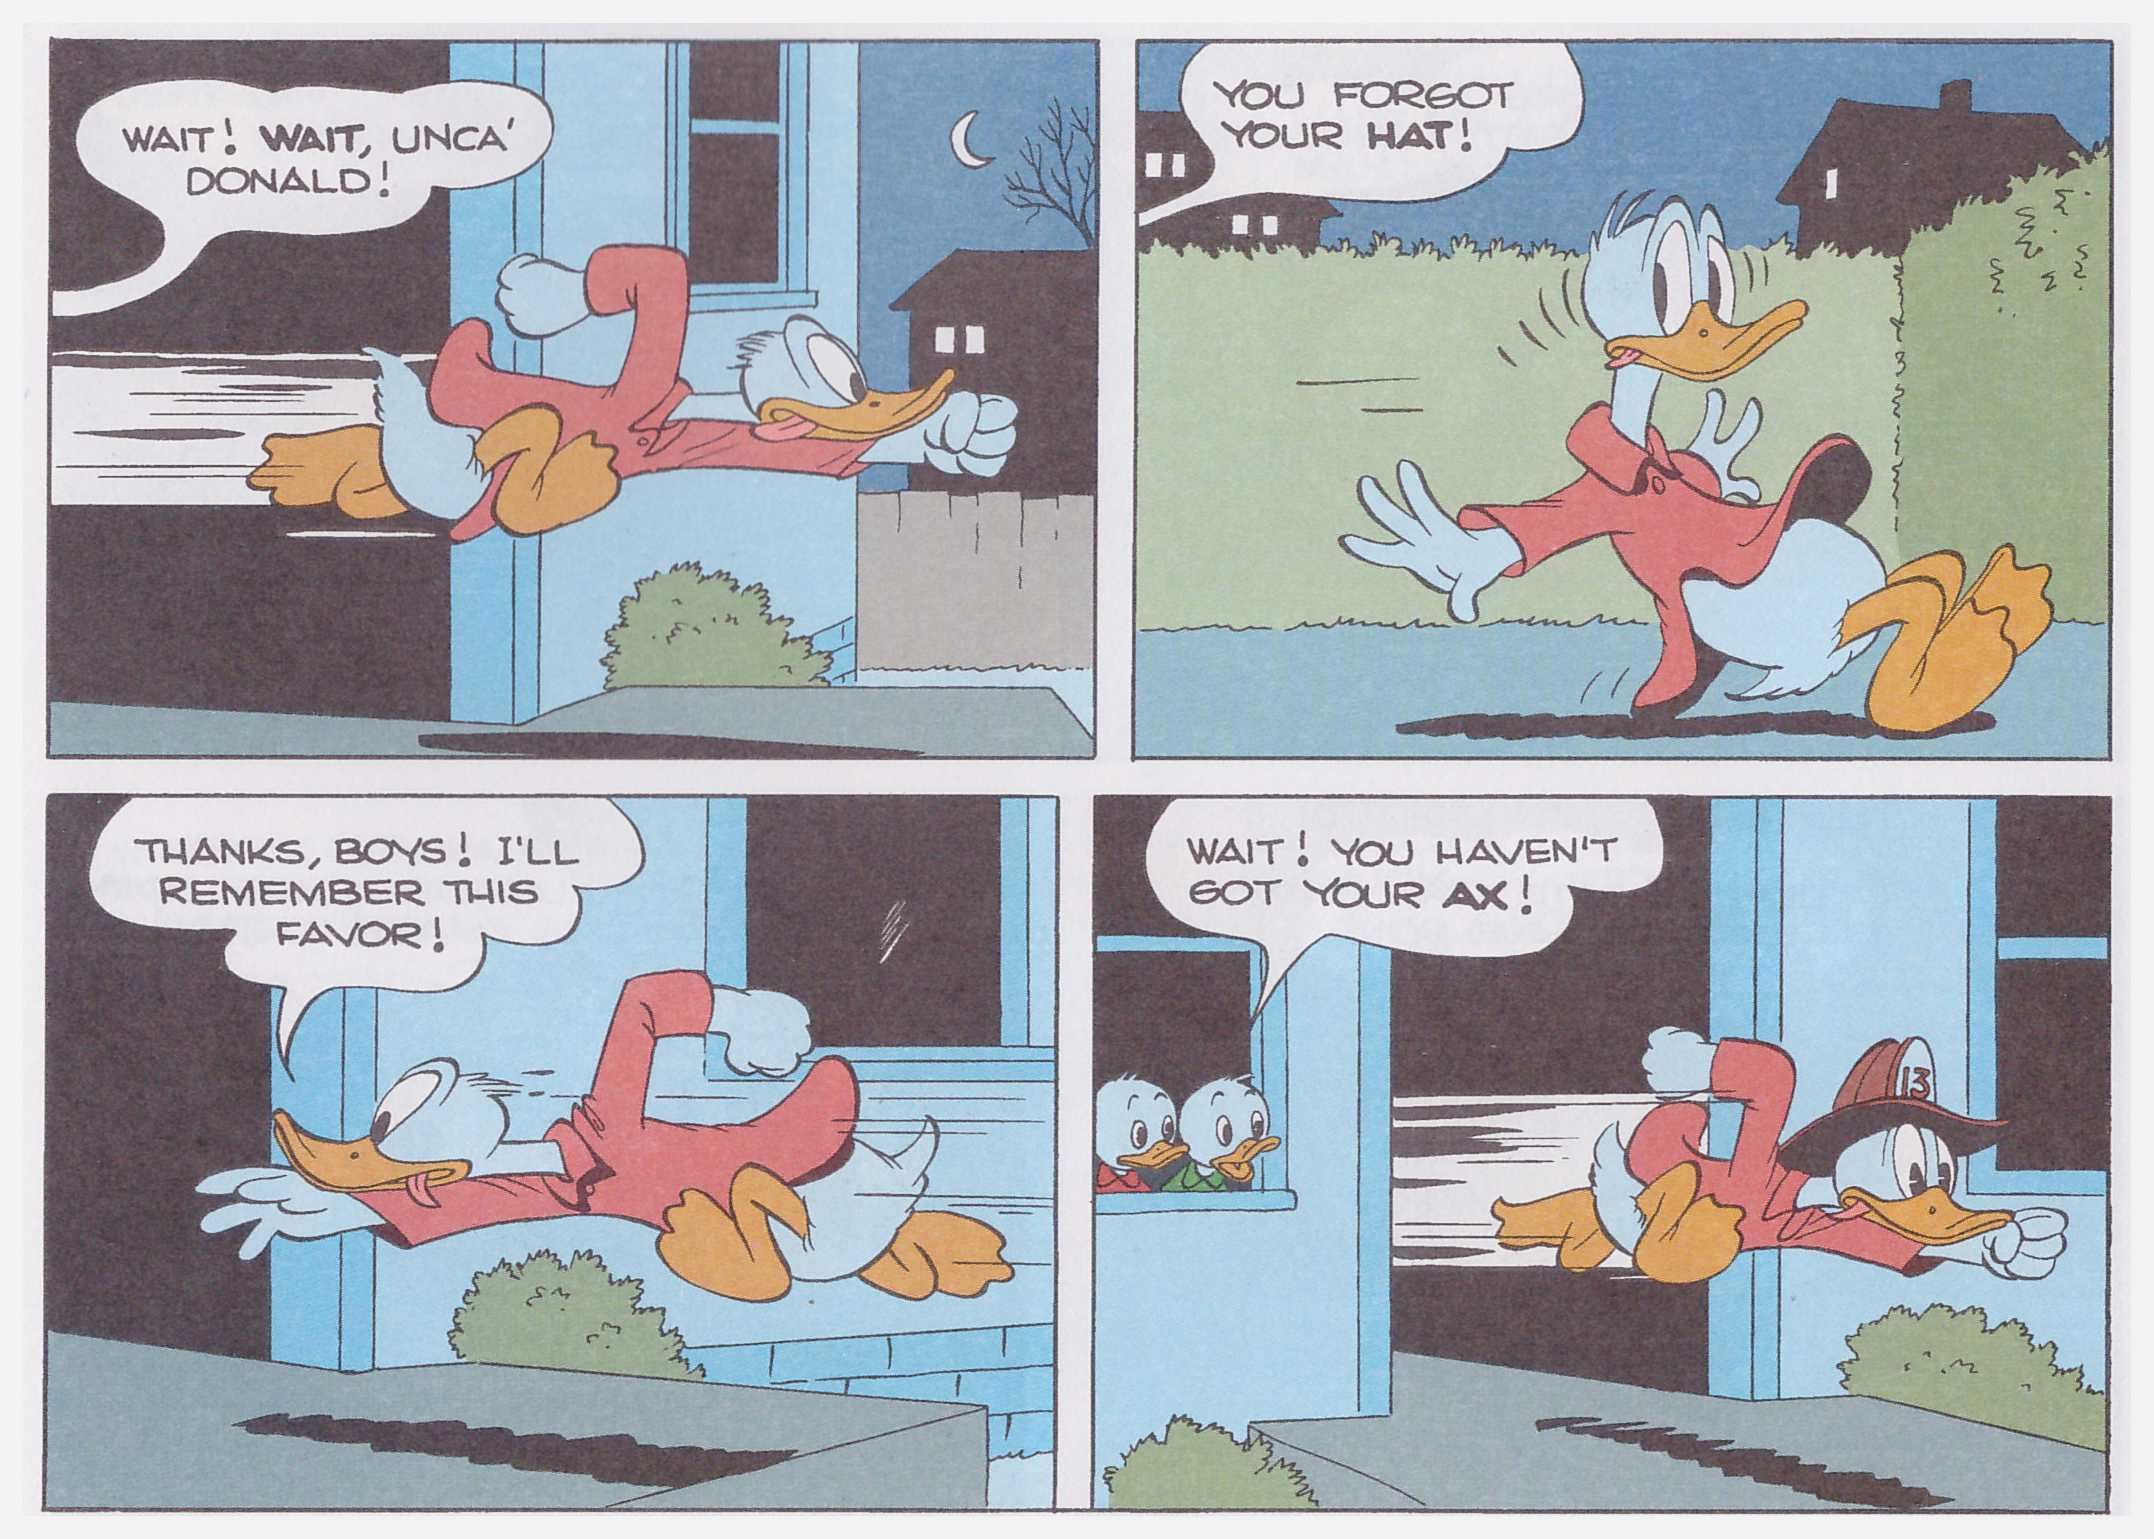 Walt Disney Comics and Stories by Carl Barks vol 11 review